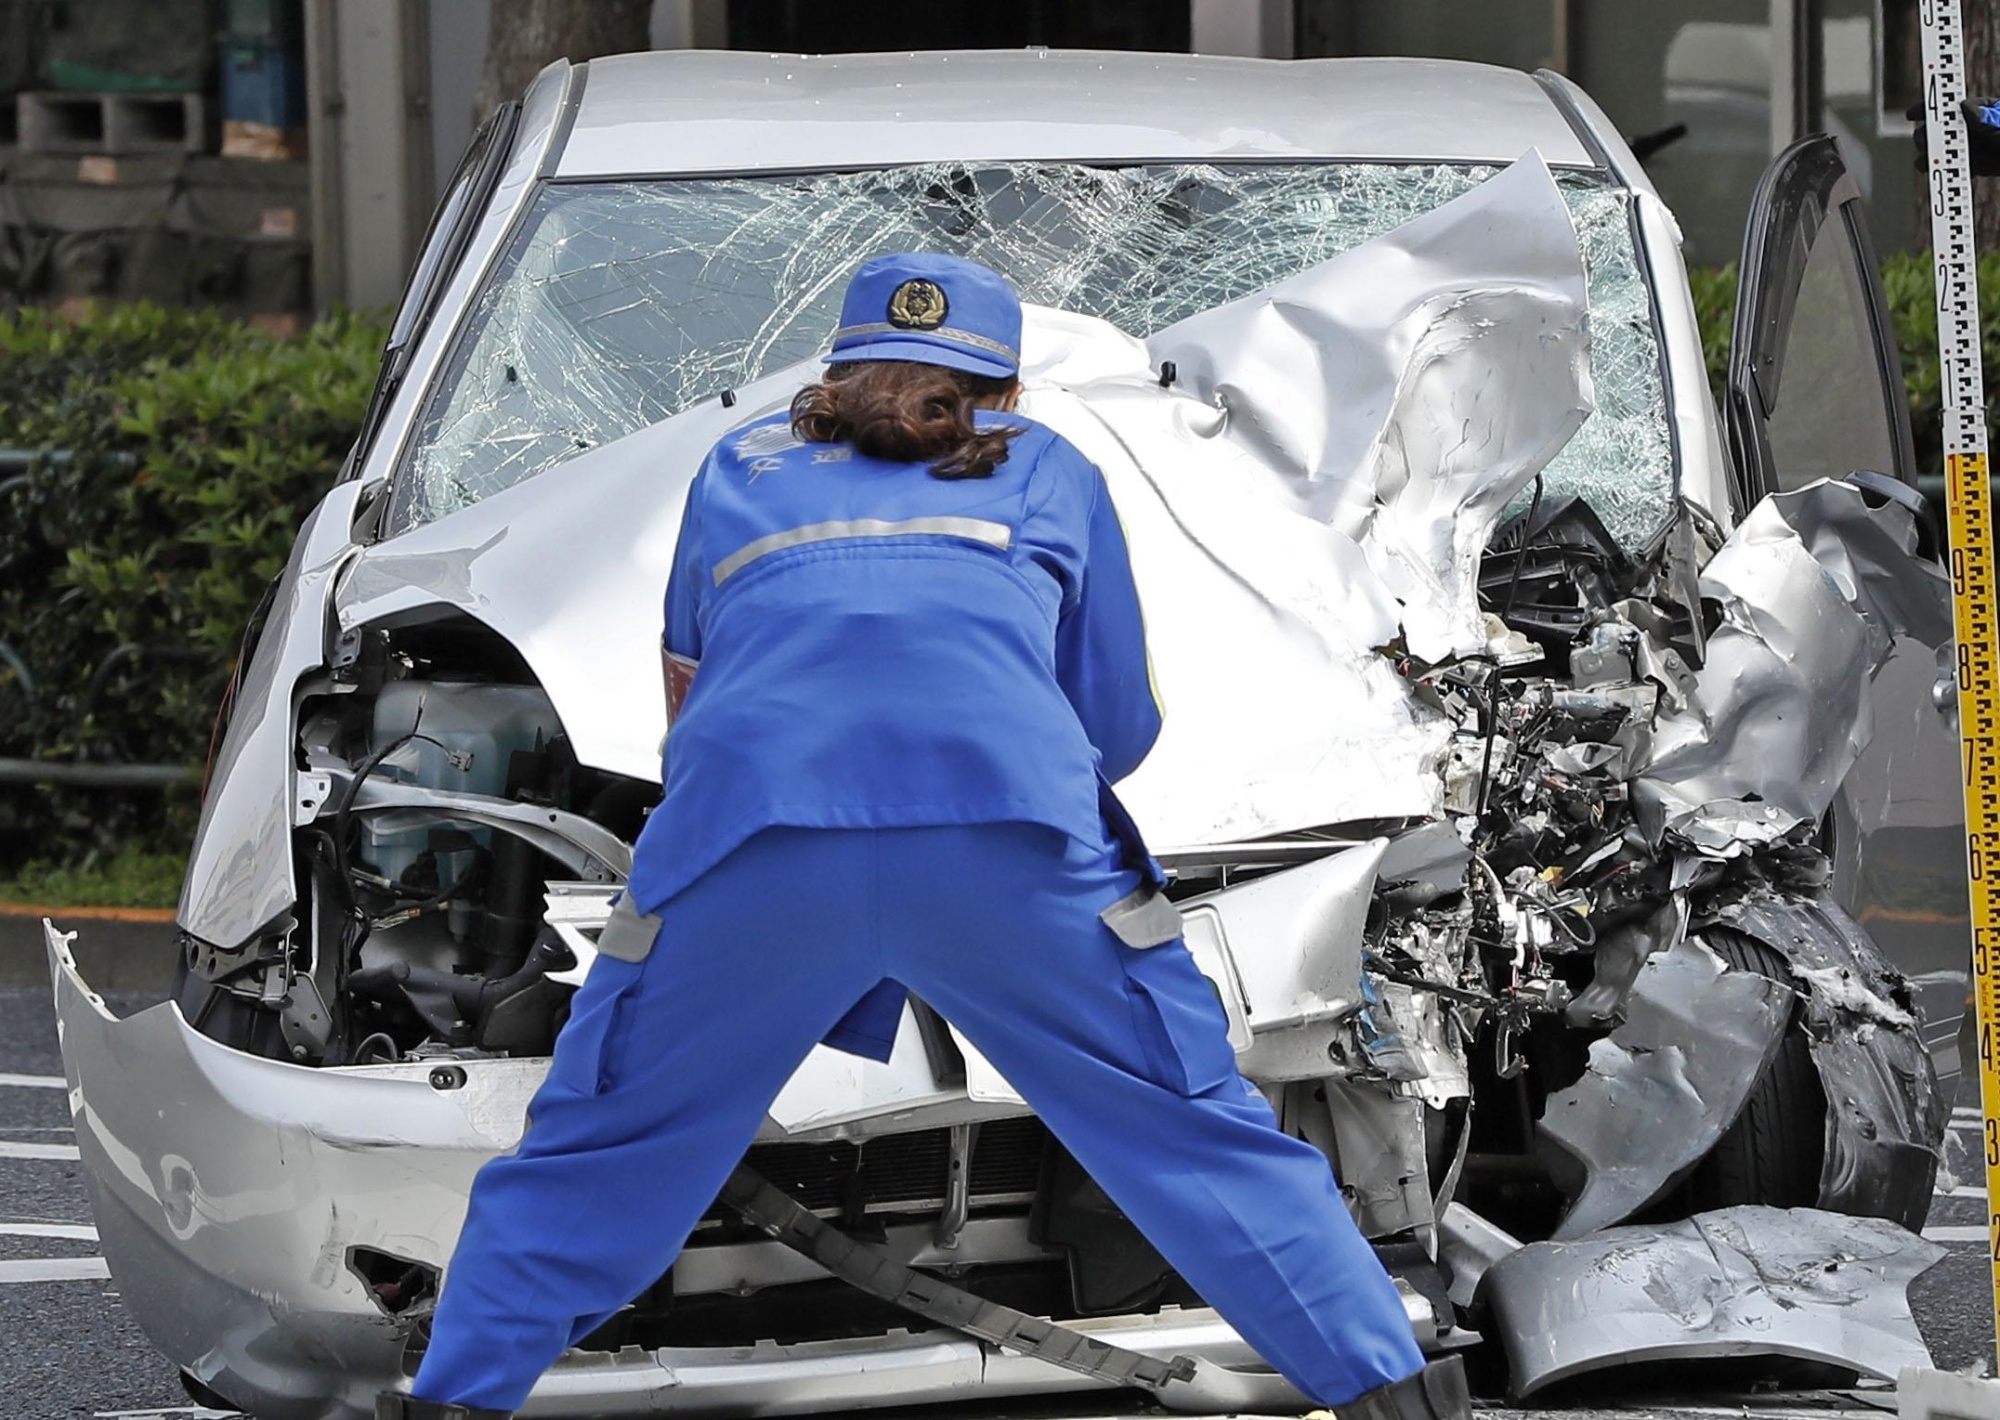 Traffic Accident Investigator Cover Letter 87 Year Old Driver In Tokyo Car Crash That Killed Mom Daughter